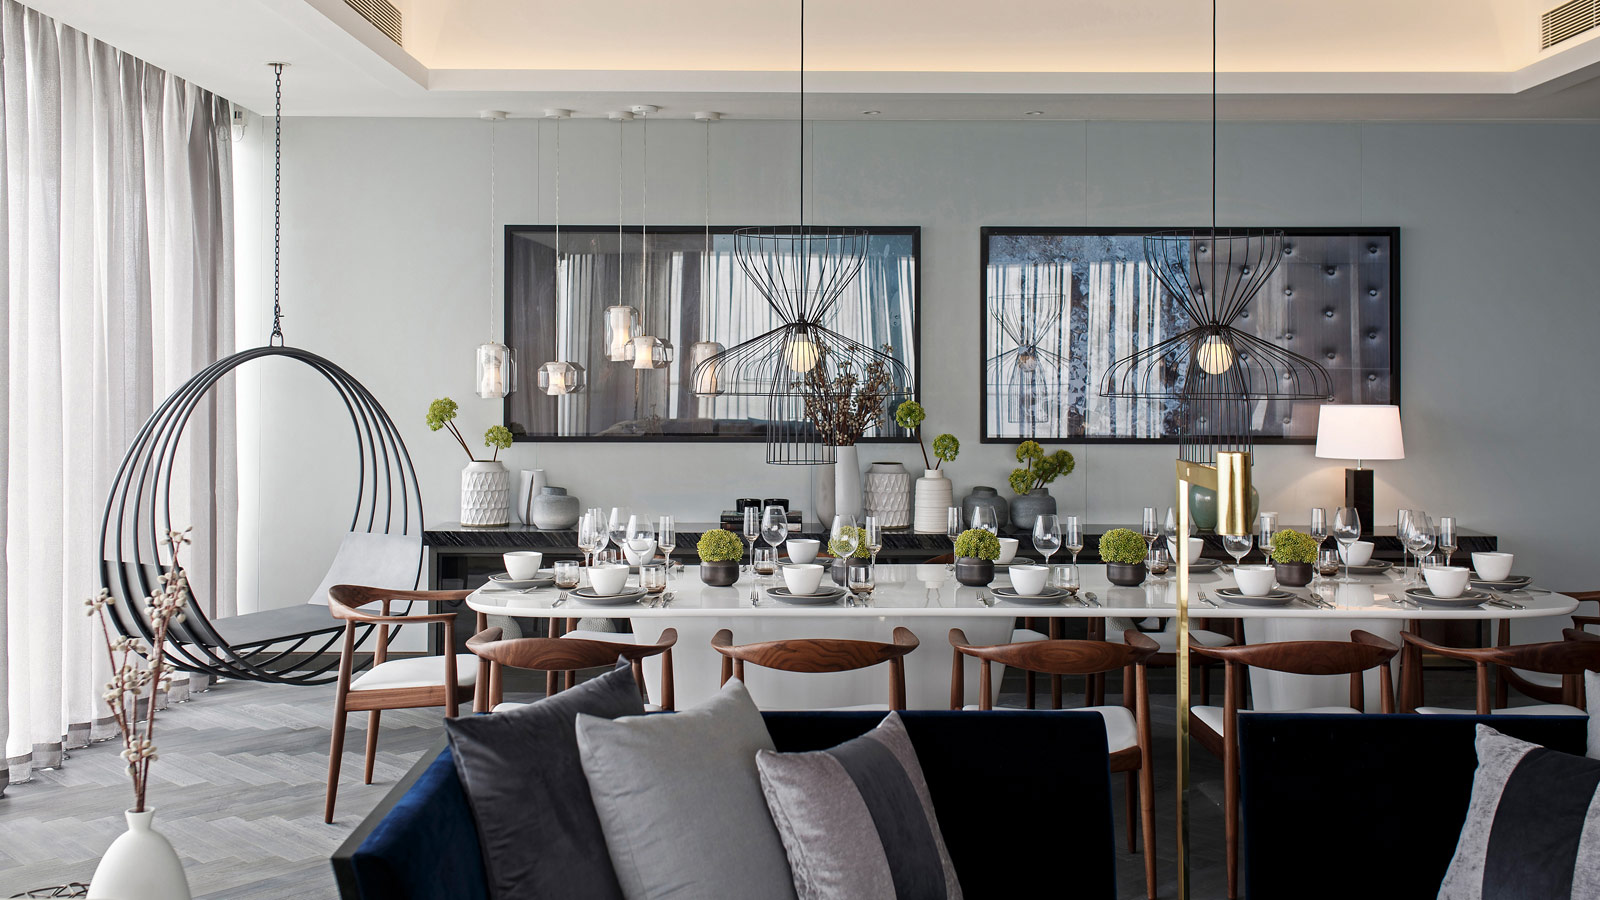 Proyecto-Kelly-Hoppen-London-Home-Foto-Mel-Yates-Porcelanosa-1